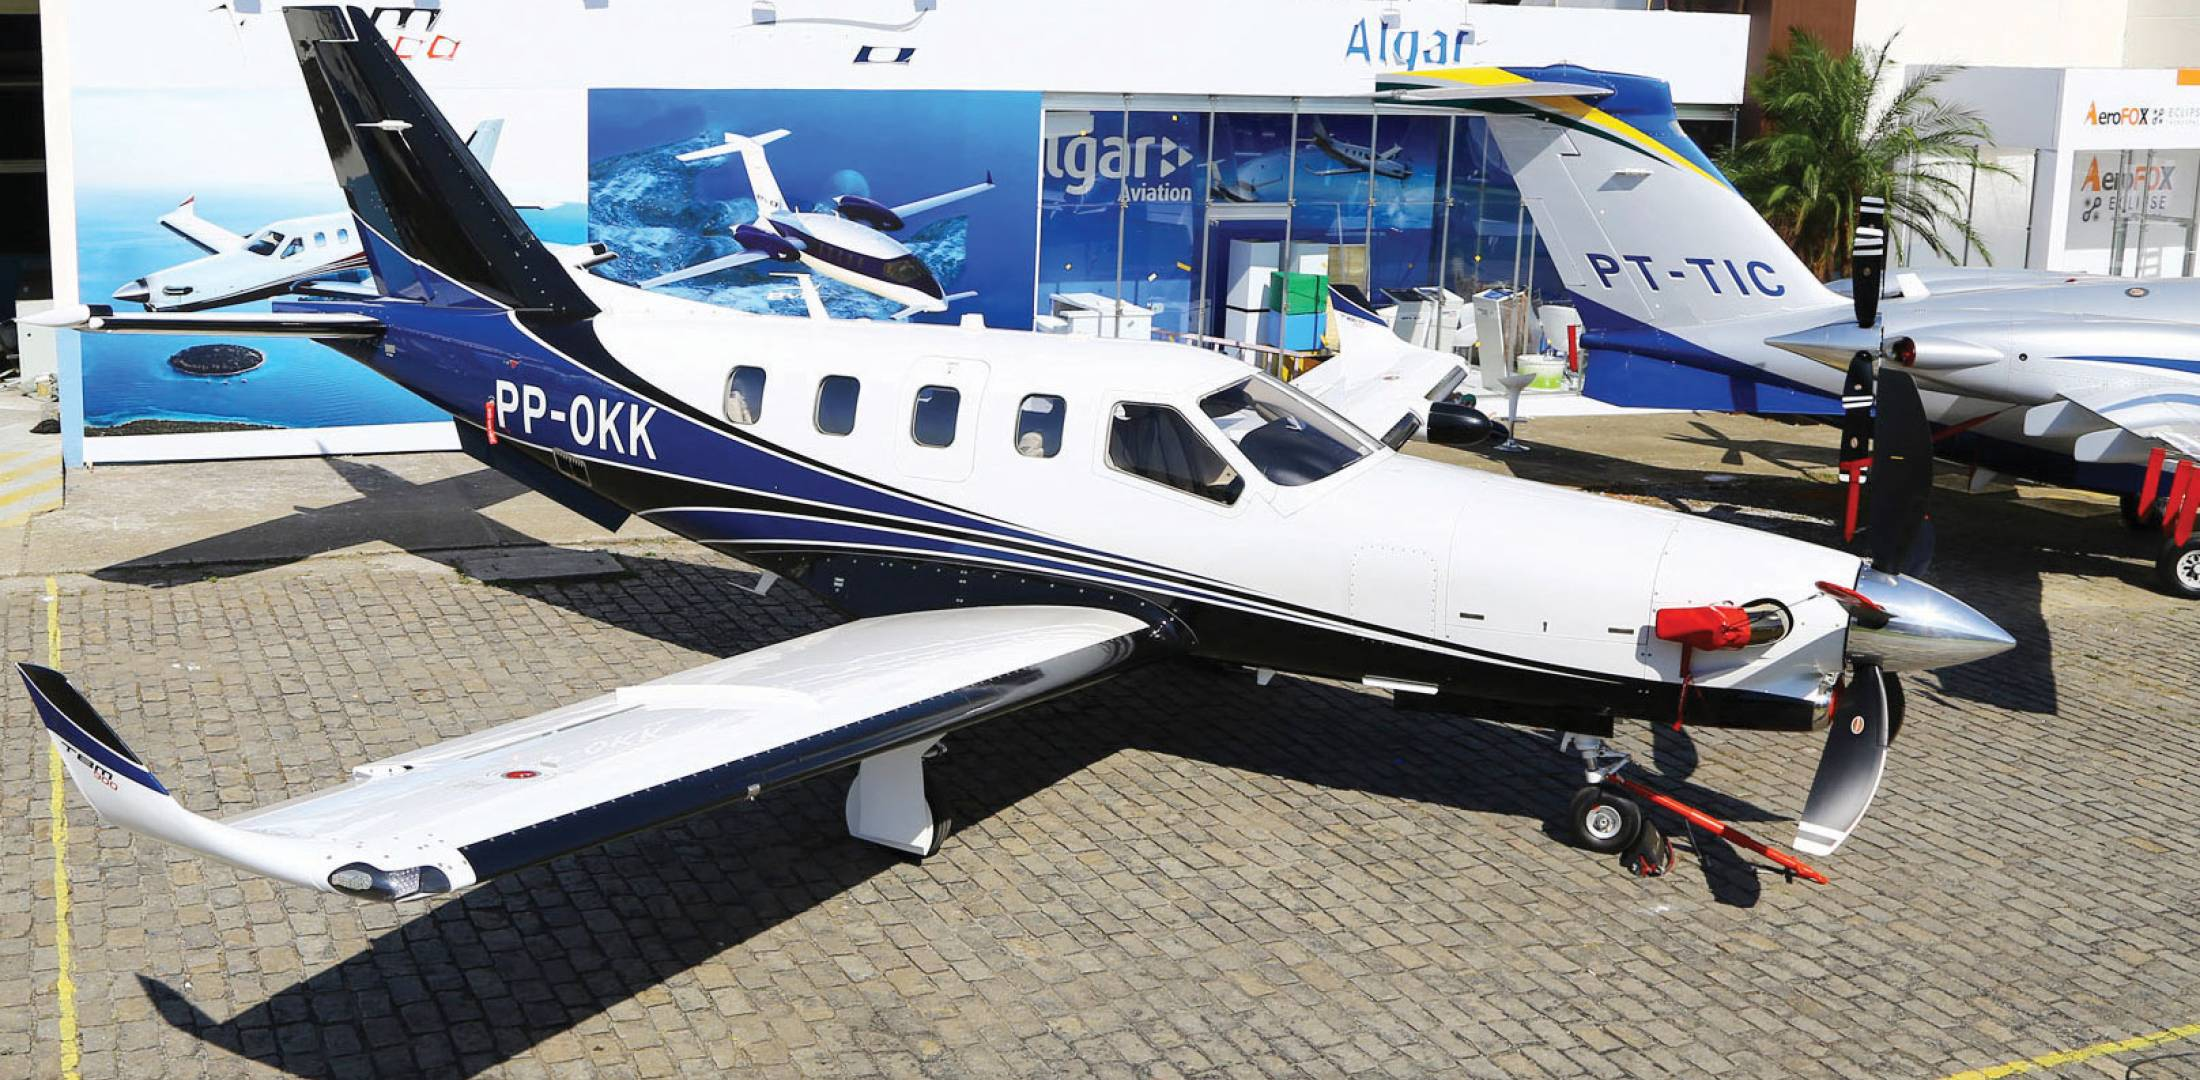 With a new five-blade Hartzell propeller leading the way, Daher-Socata's TBM 900 is a winner. (Photo: David McIntosh)